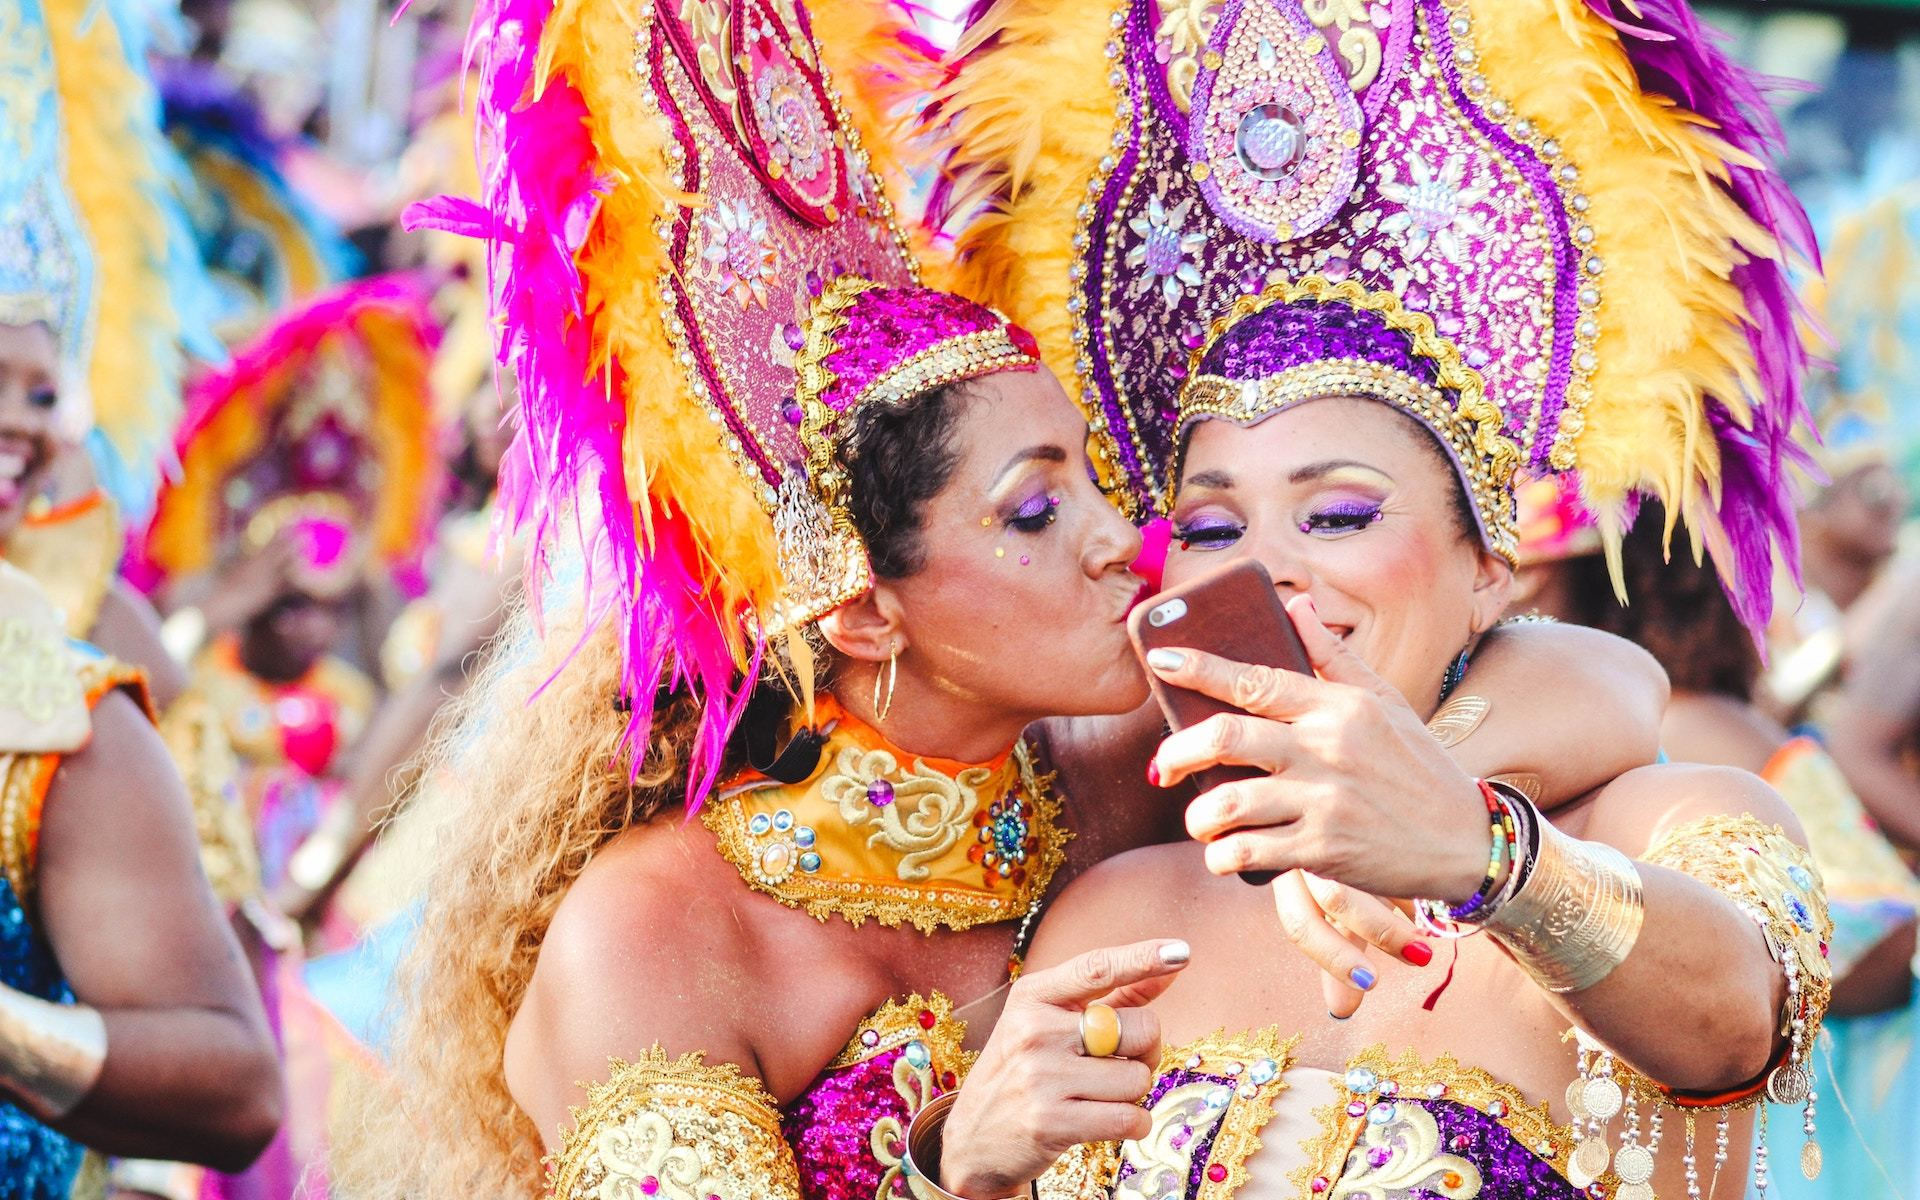 two women in carnival costumes